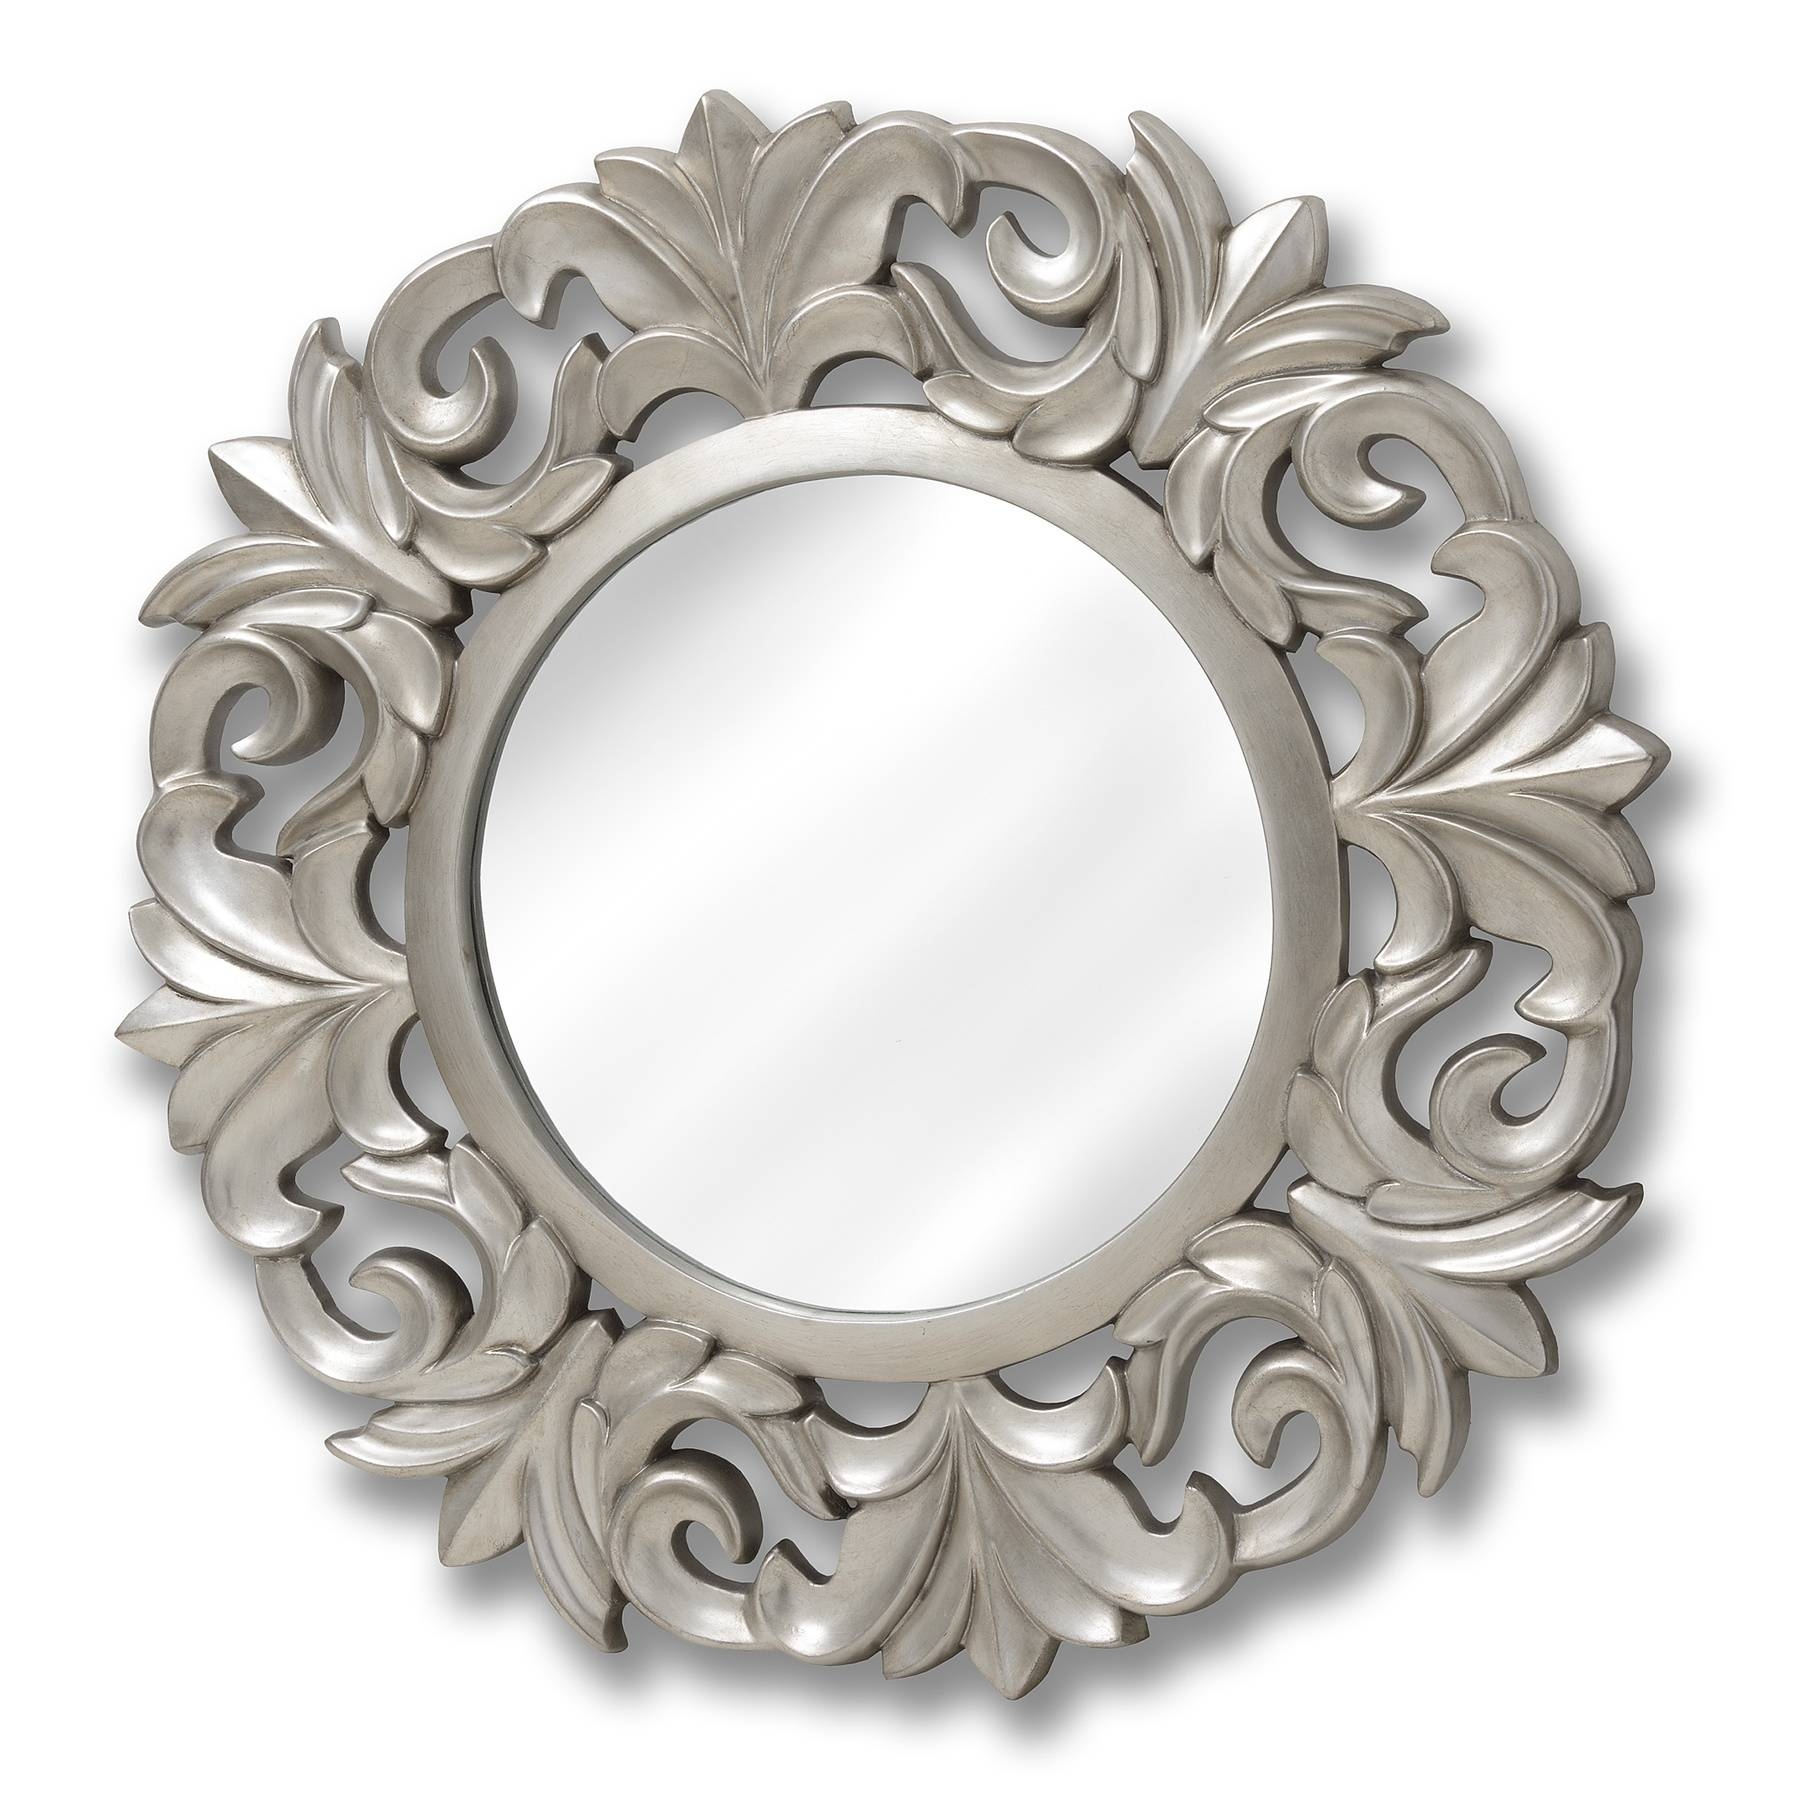 Baroque Style Round Silver Mirror | Happy Home Interiors inside Baroque Style Mirrors (Image 8 of 25)